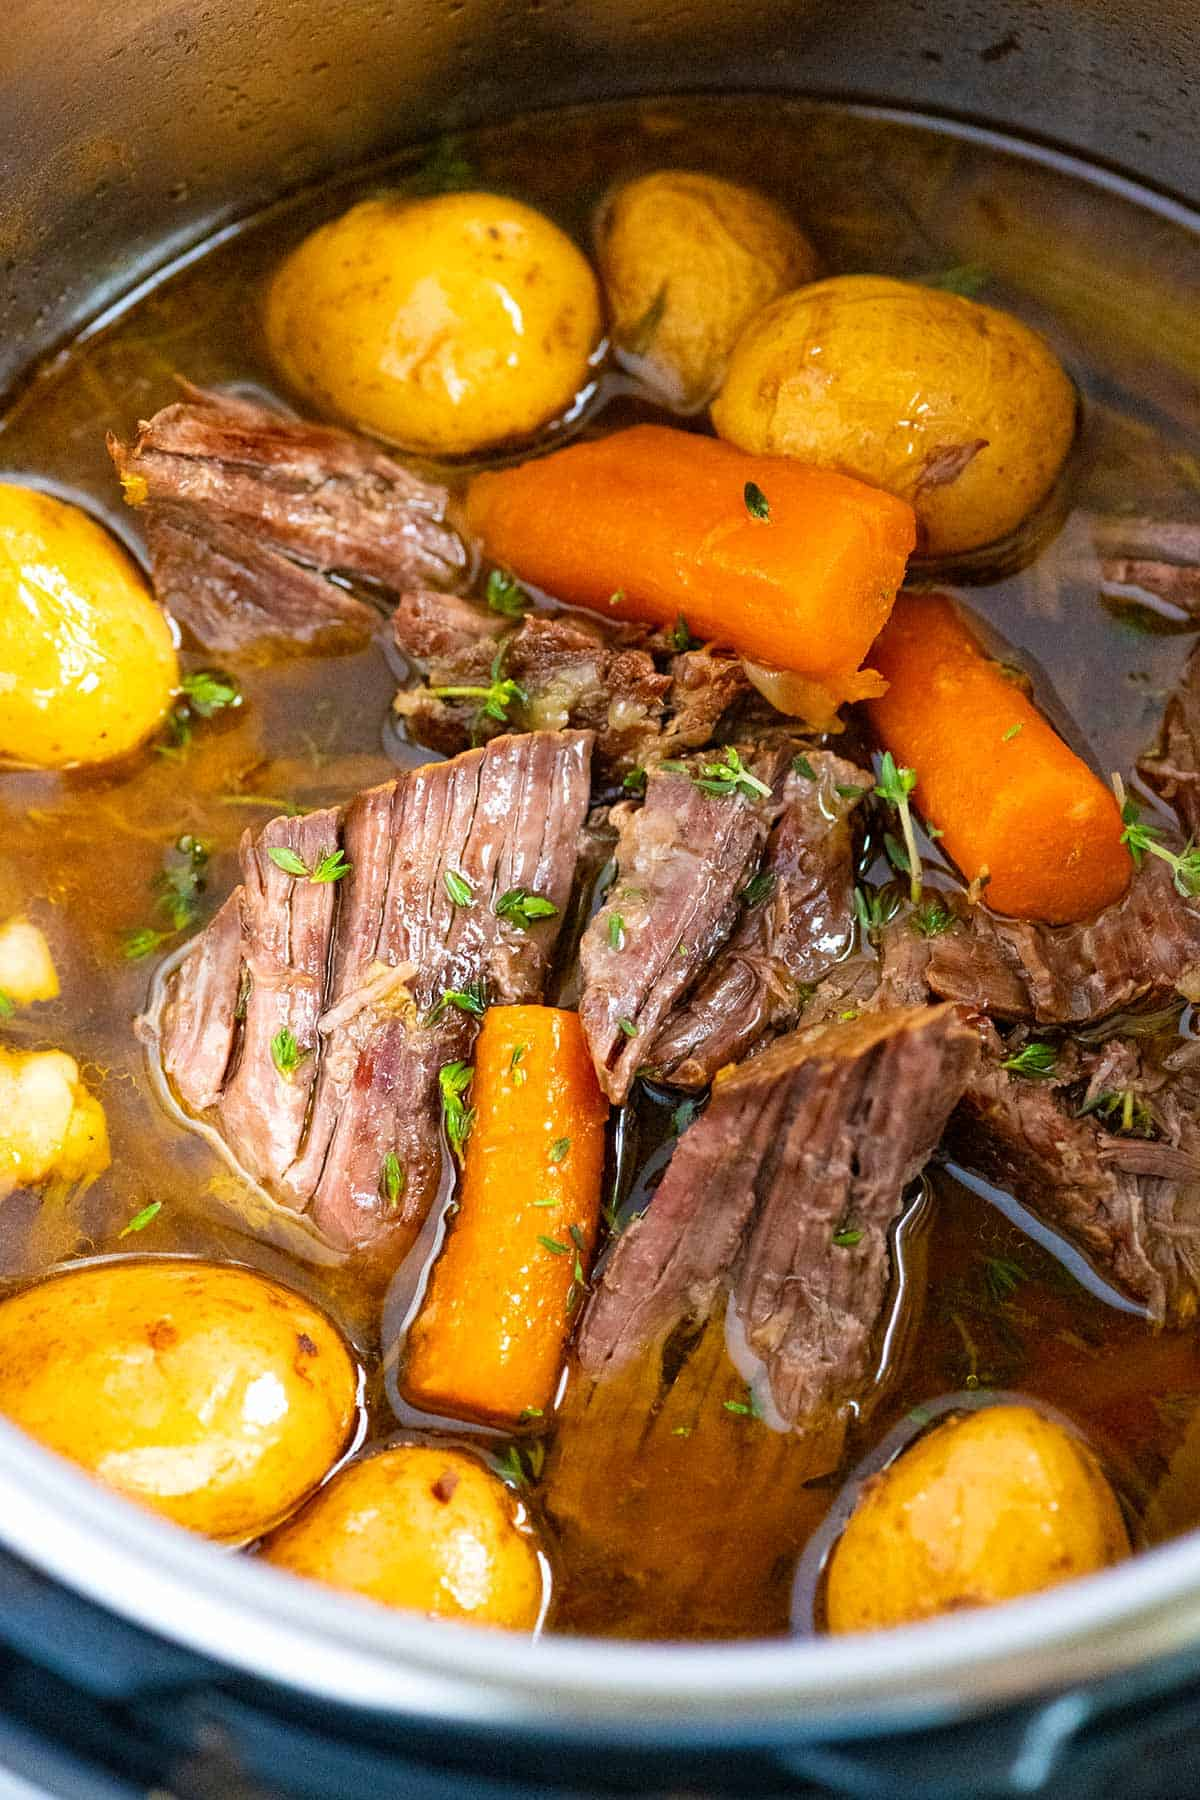 How to make melt-in-your-mouth pot roast using a pressure cooker like an Instant Pot. This easy recipe makes ultra-flavorful beef guaranteed to satisfy the entire family.